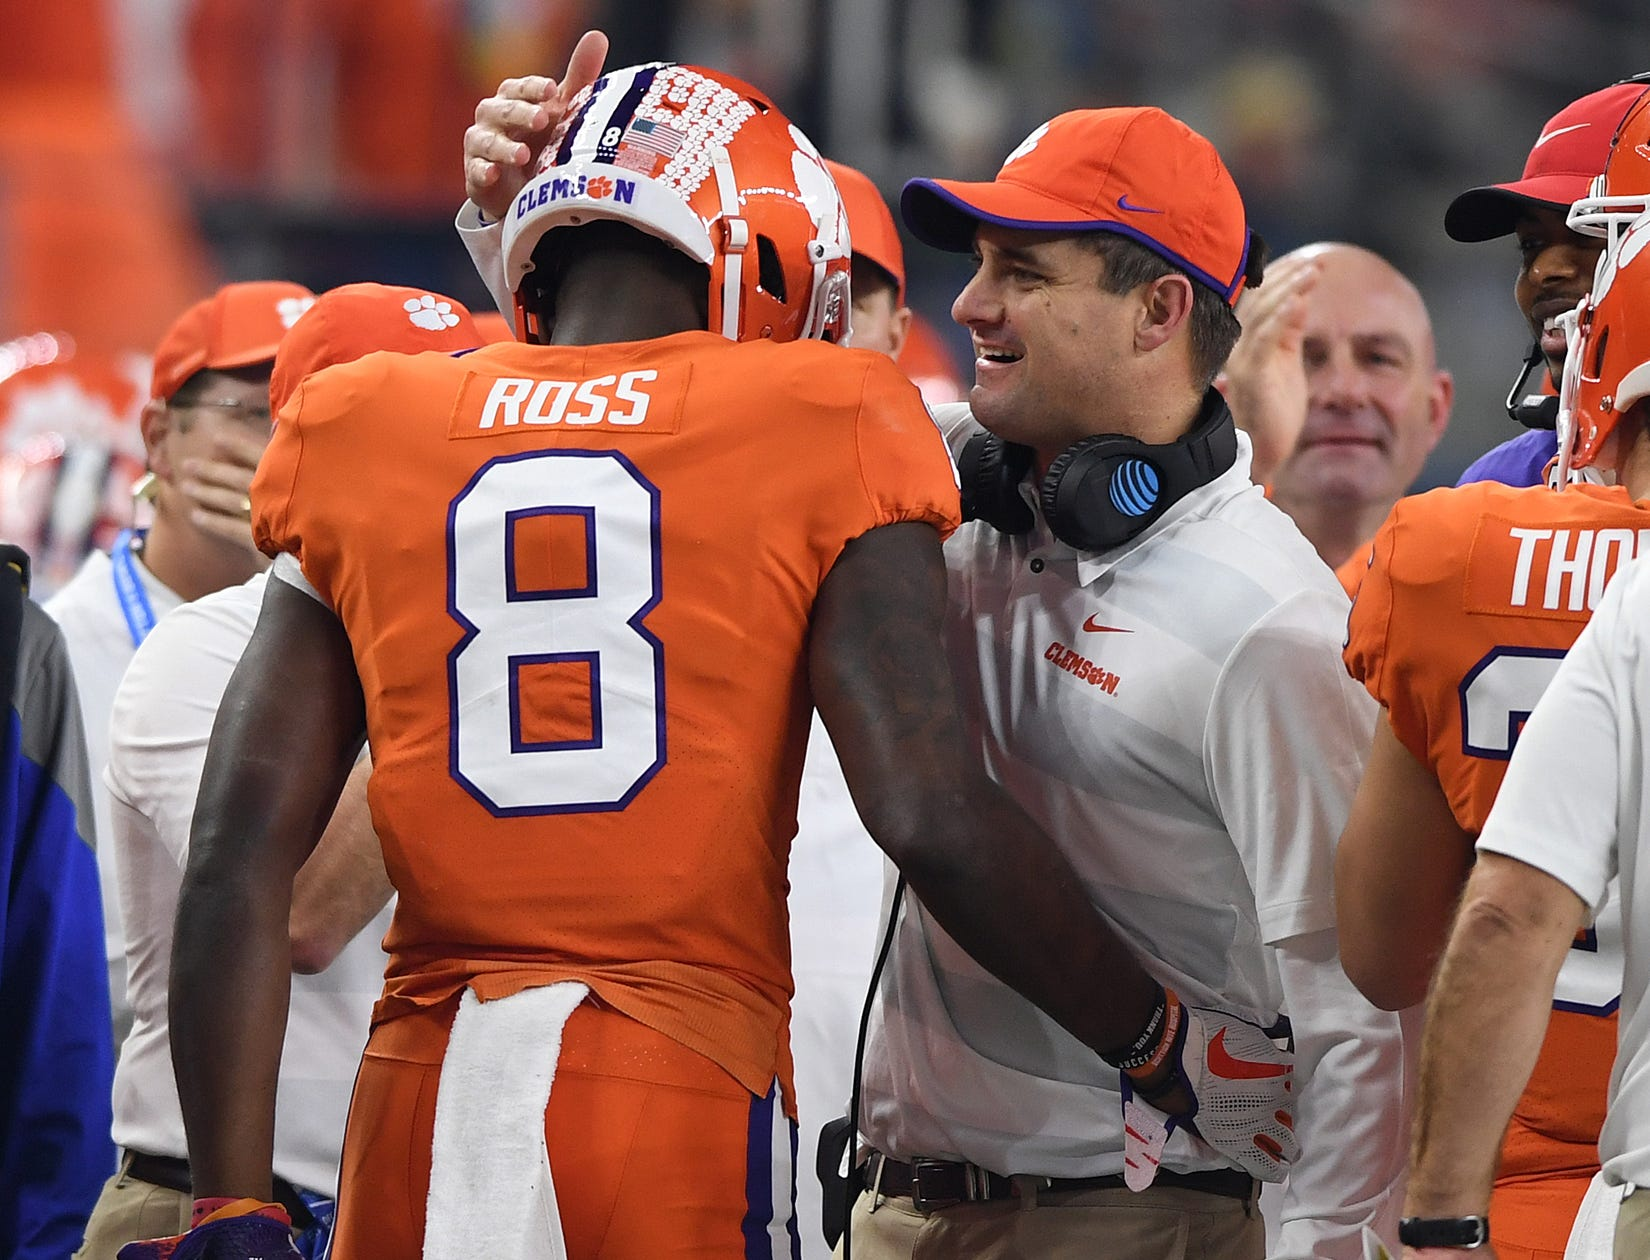 Clemson wide receiver Justyn Ross (8) is congratulated by co-offensive coordinator Jeff Scott after scoring against Notre Dame on a 52 yard reception during the 2nd quarter of the Goodyear Cotton Bowl at AT&T stadium in Arlington, TX Saturday, December 29, 2018.